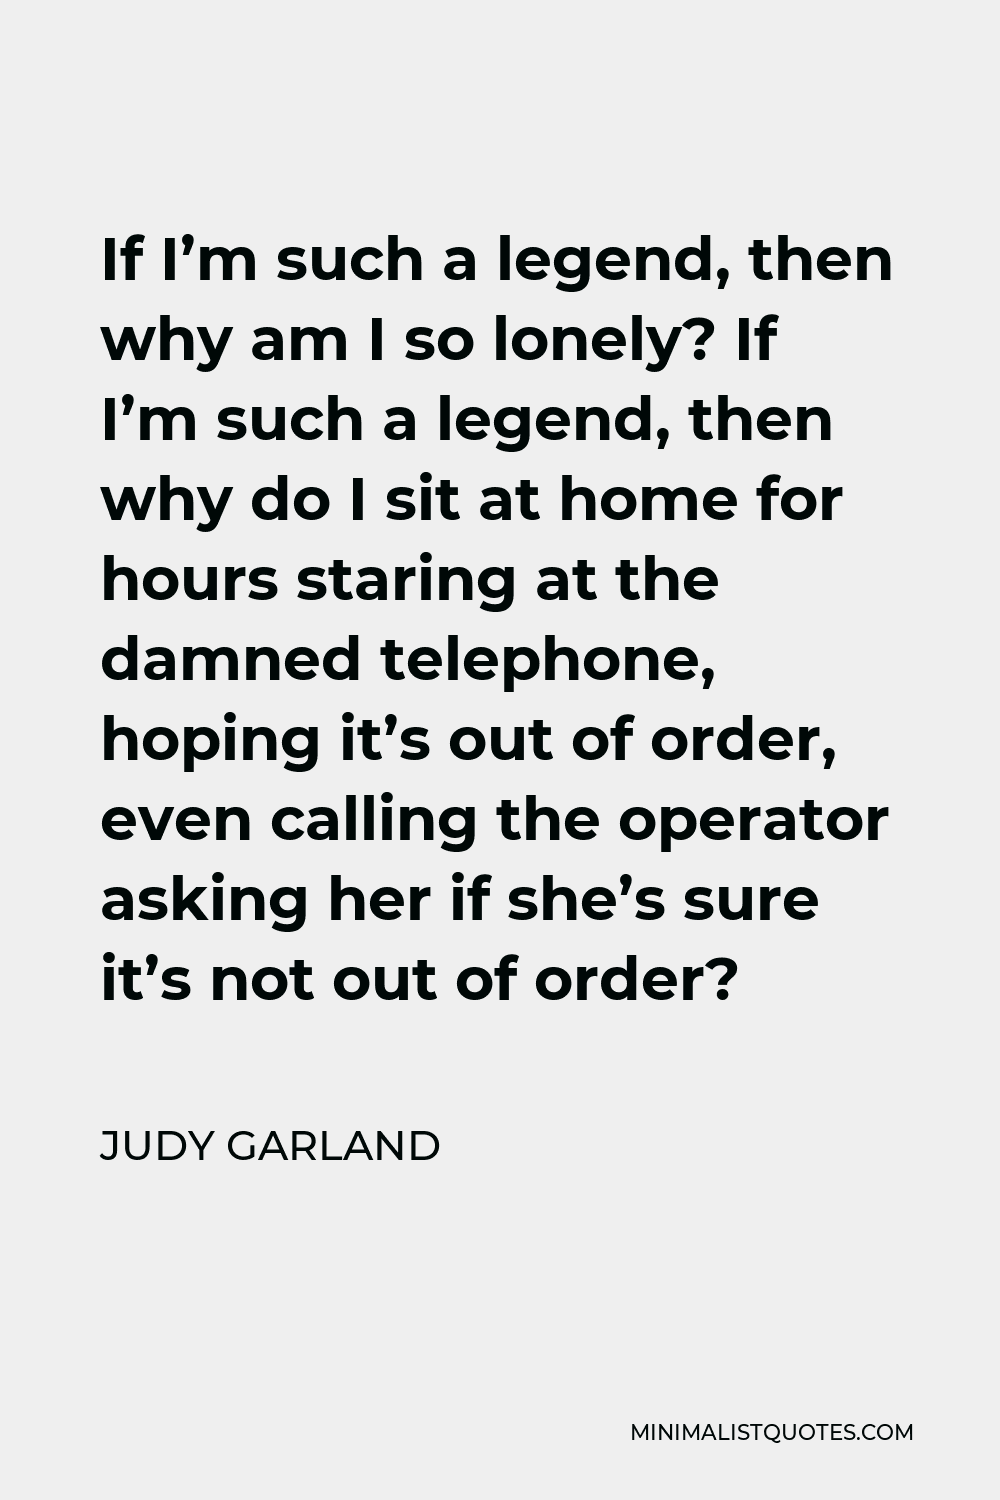 Judy Garland Quote - If I'm such a legend, then why am I so lonely? If I'm such a legend, then why do I sit at home for hours staring at the damned telephone, hoping it's out of order, even calling the operator asking her if she's sure it's not out of order?